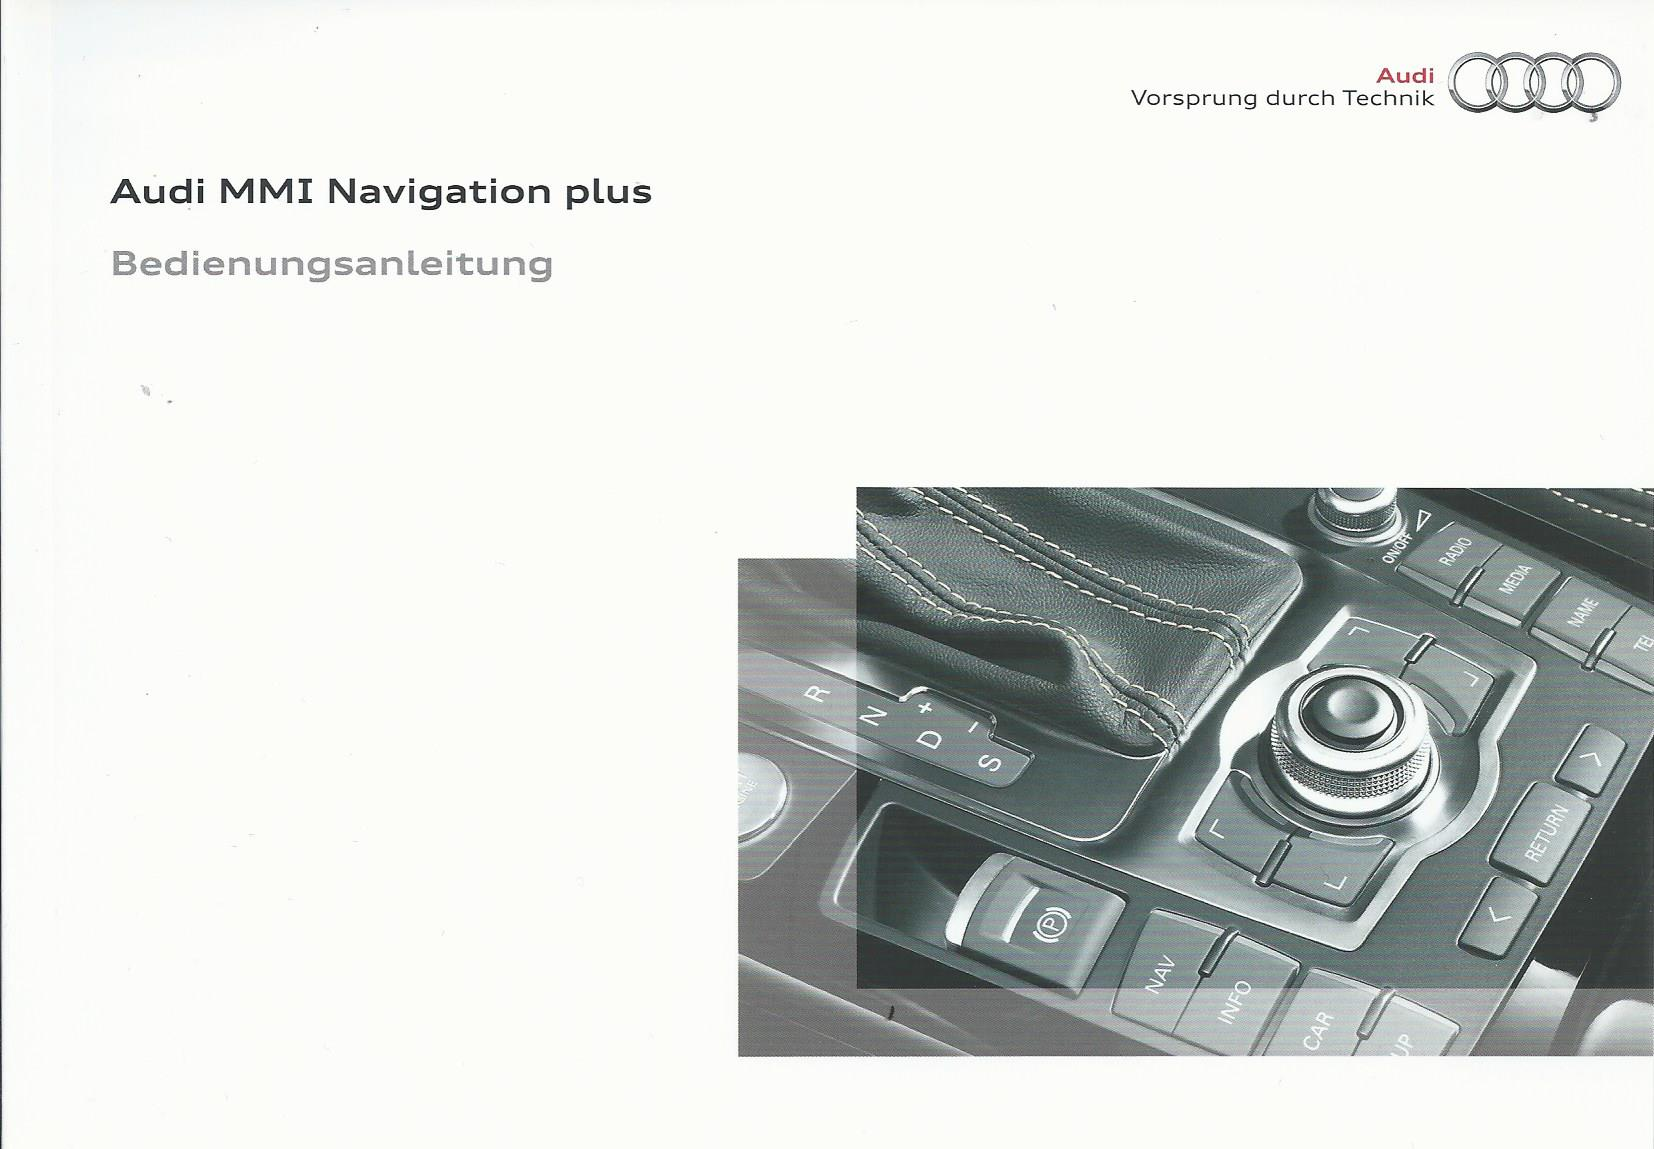 audi mmi navigation plus betriebsanleitung 2009 bedienungsanleitung handbuch rn ebay. Black Bedroom Furniture Sets. Home Design Ideas